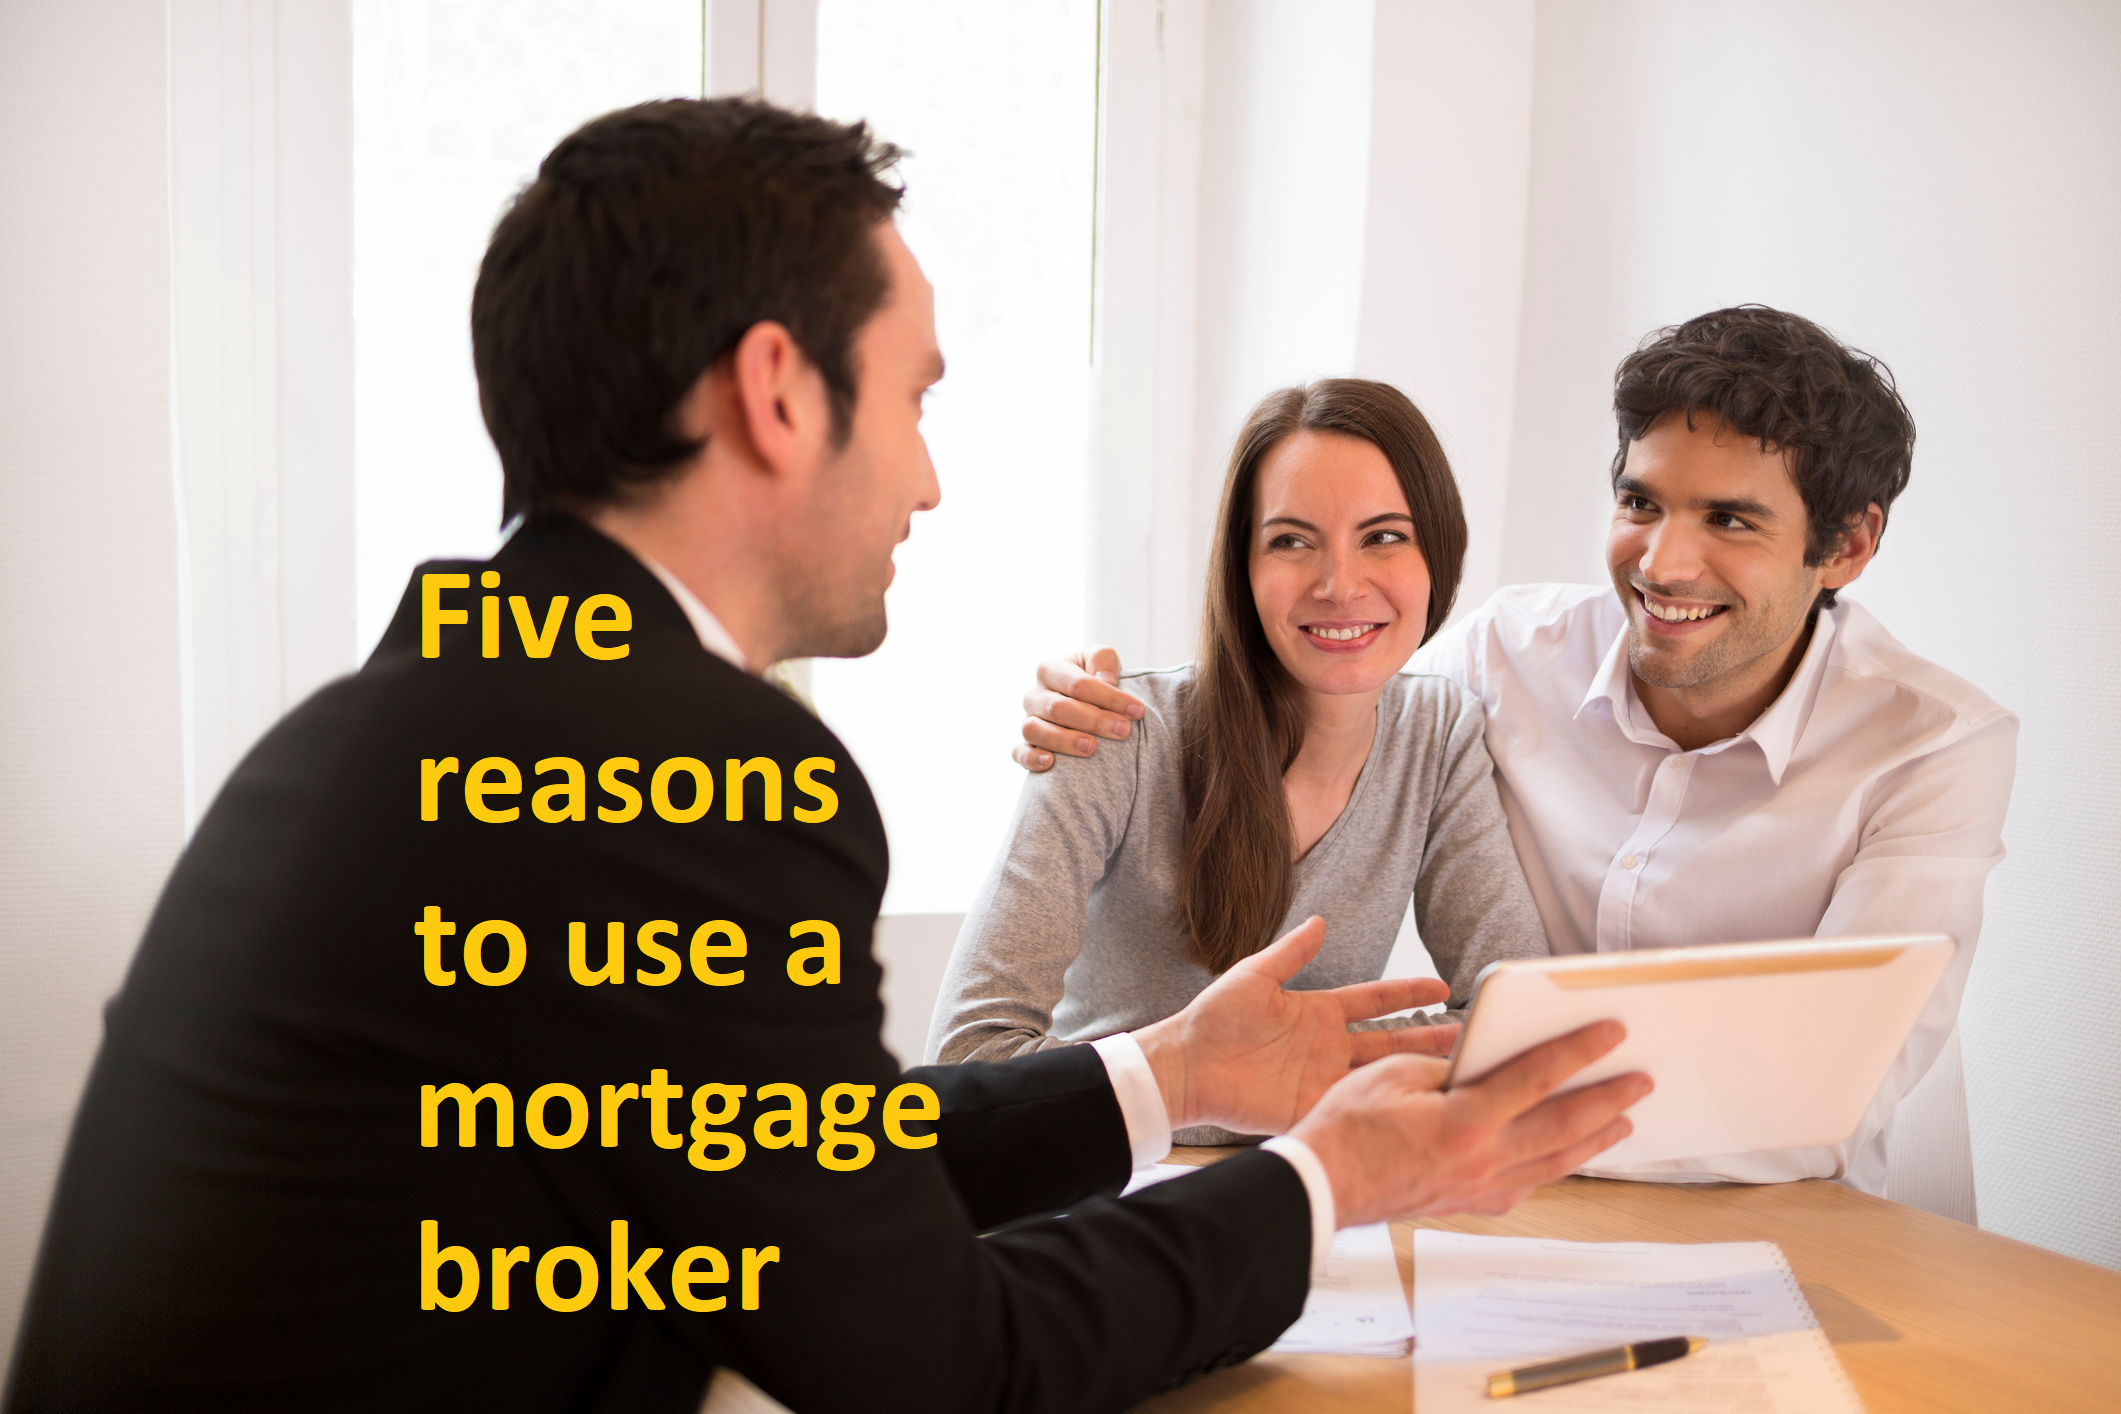 Five reasons to use a mortgage broker